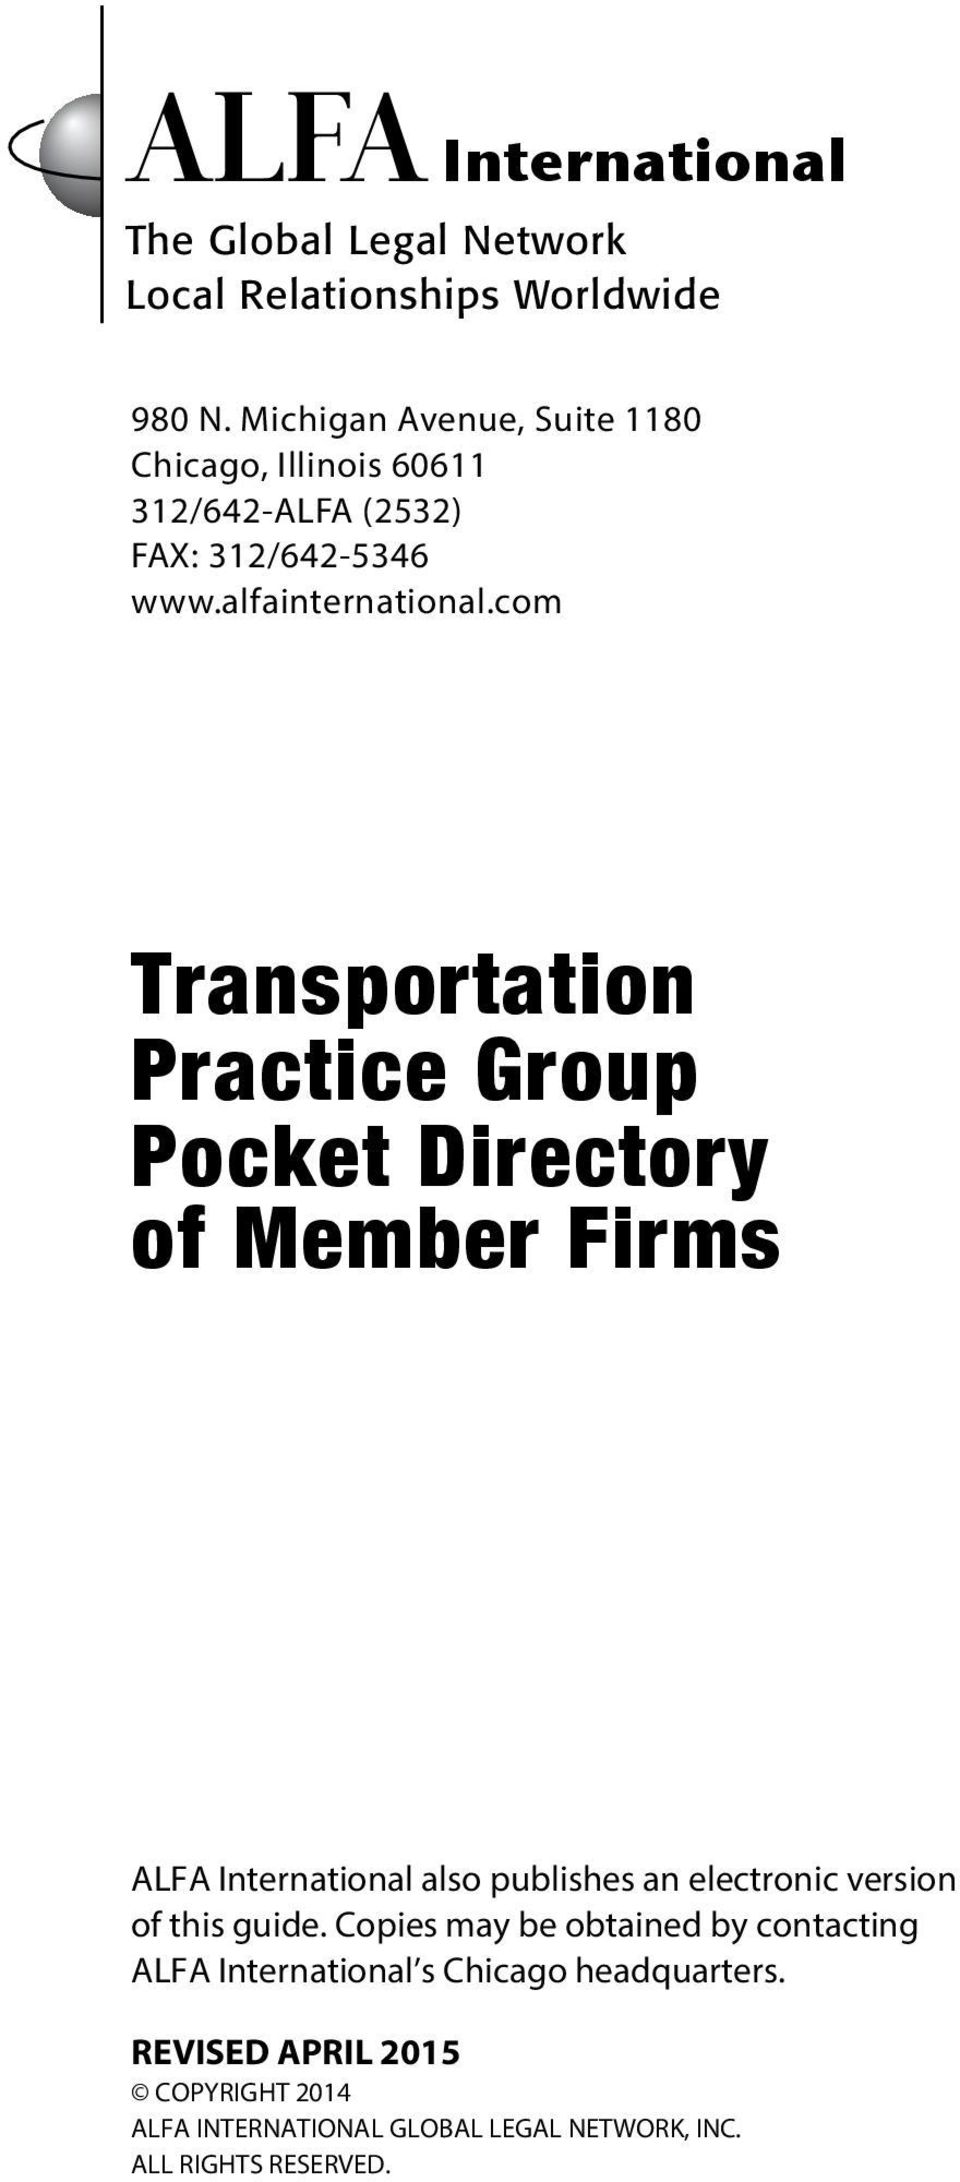 com Transportation Practice Group Pocket Directory of Member Firms ALFA International also publishes an electronic version of